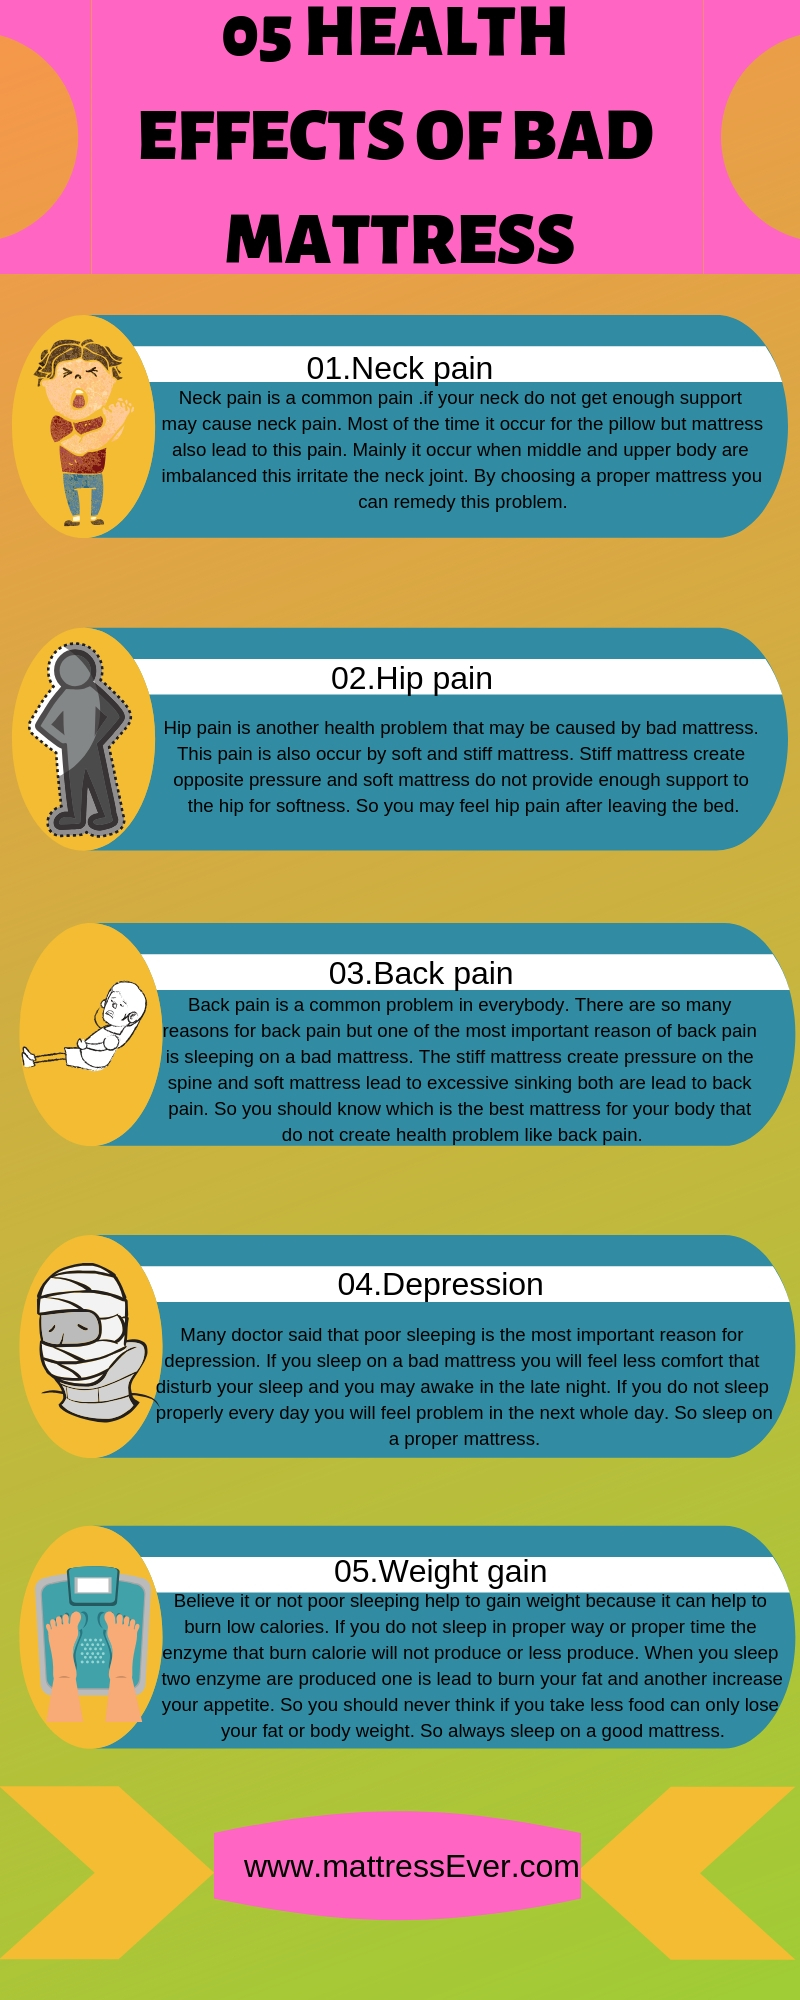 Health Effects of Bad Mattress info graphic